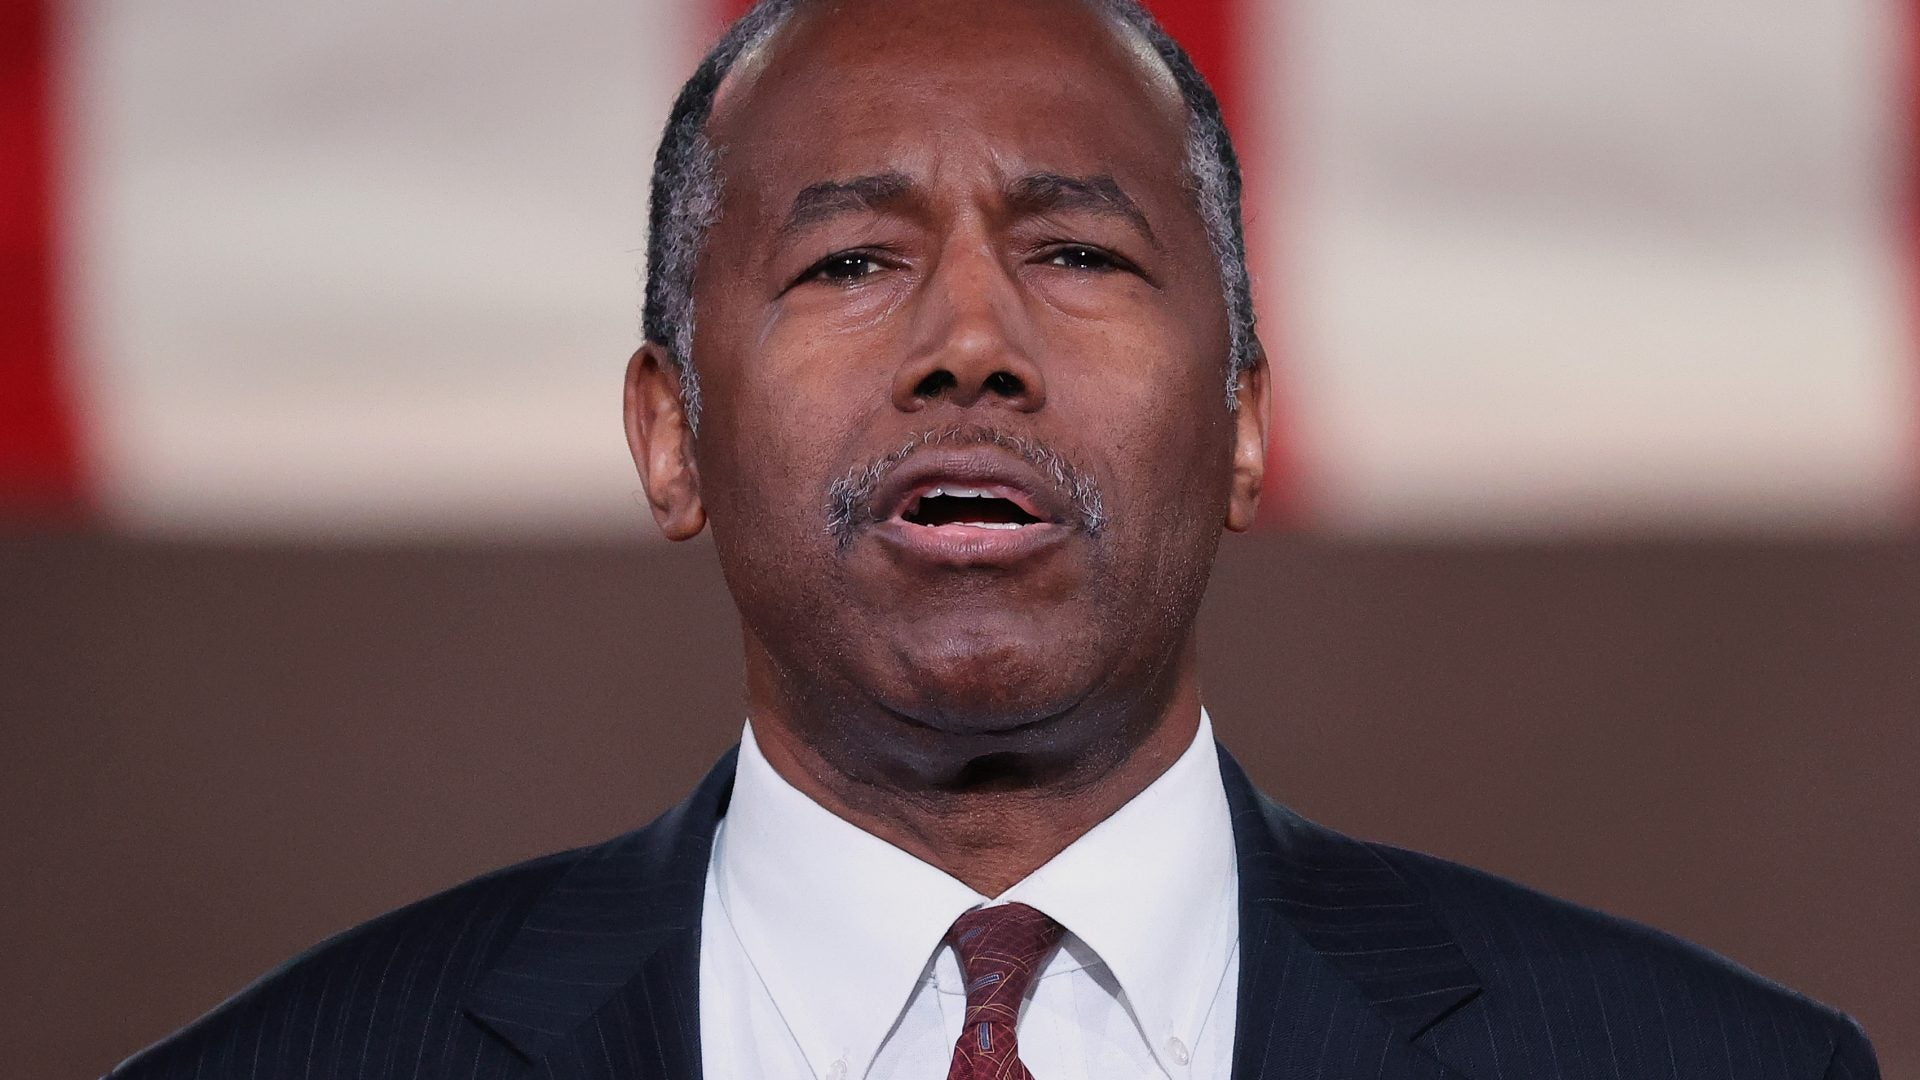 HUD Secretary Ben Carson Has Tested Positive For COVID-19